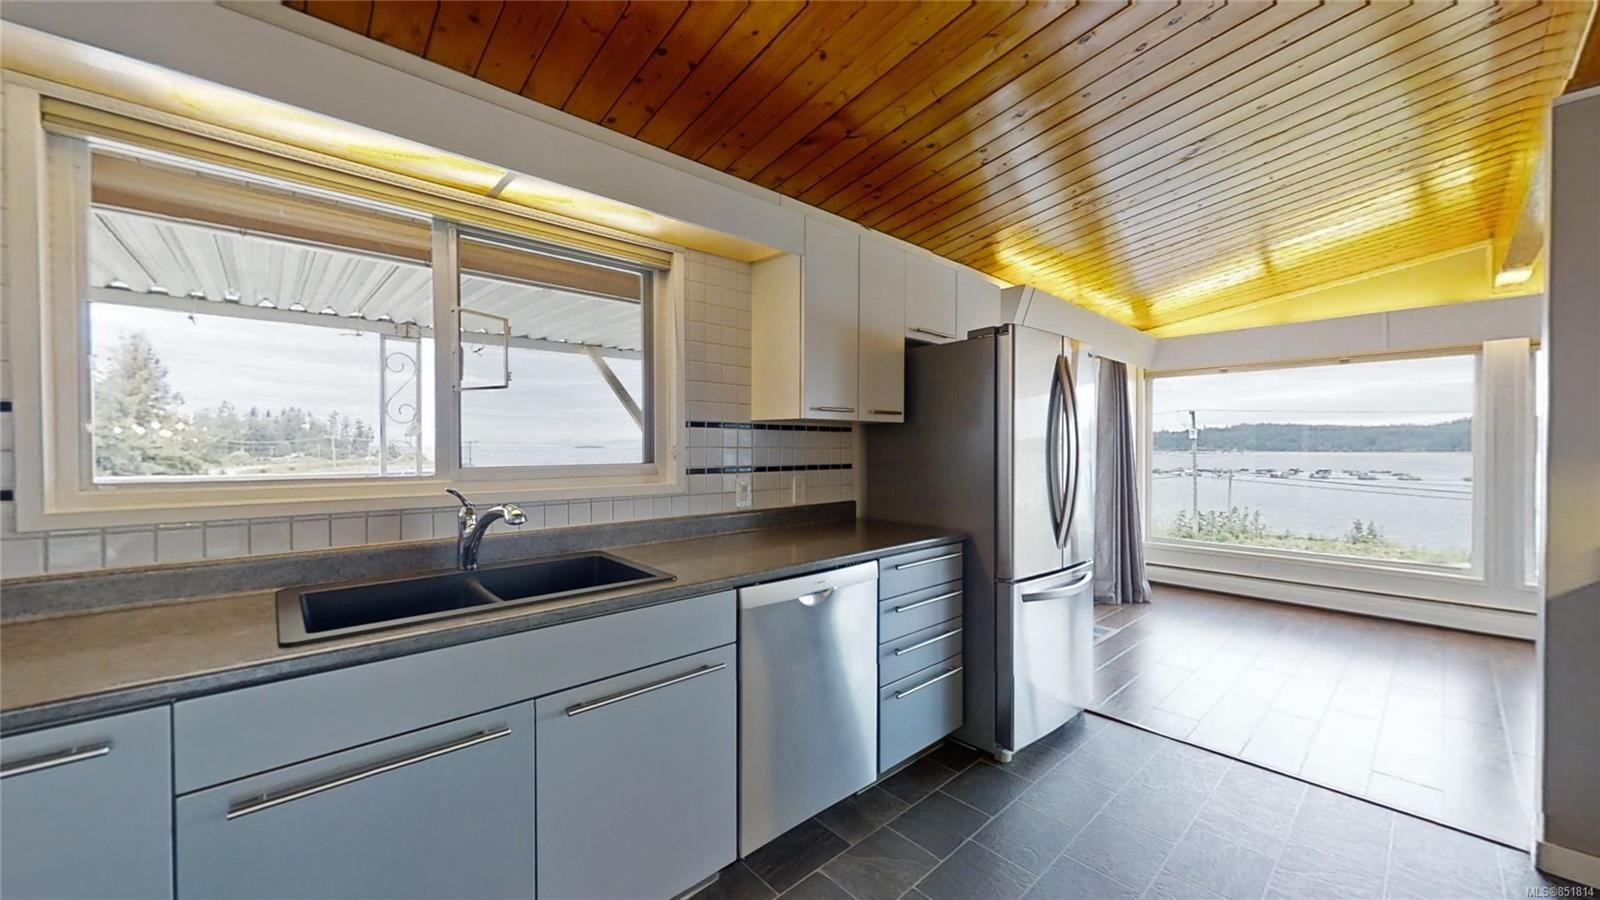 Photo 15: Photos: 191 Muschamp Rd in : CV Union Bay/Fanny Bay House for sale (Comox Valley)  : MLS®# 851814